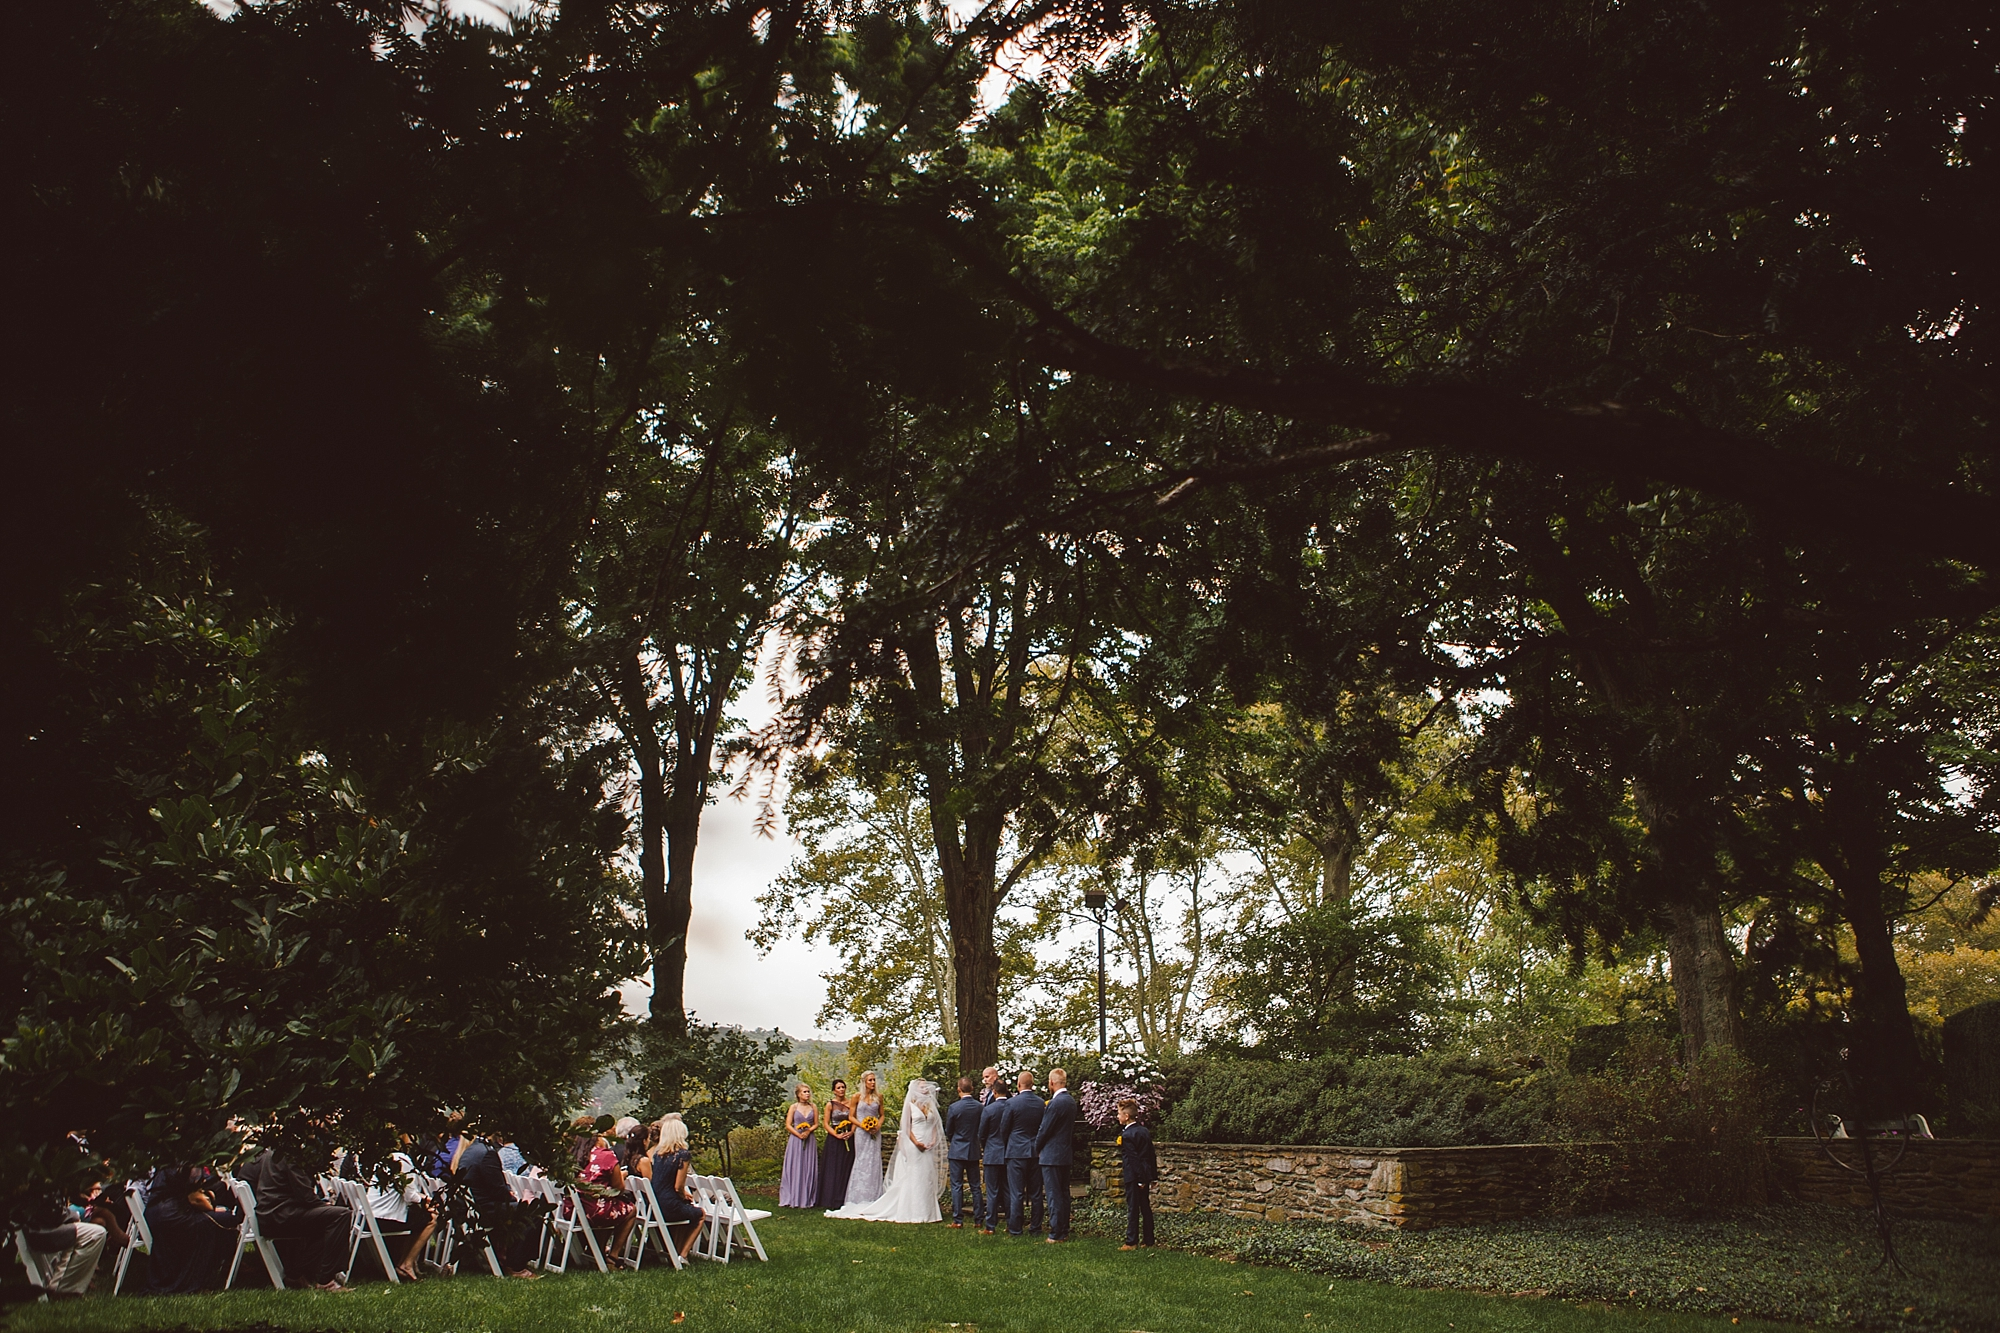 Druemore_Joe_Mac_Creative_Philadelphila_Wedding_Photography_drumore_estate_pequea_Best_lancaster_wedding_venues_0036.jpg